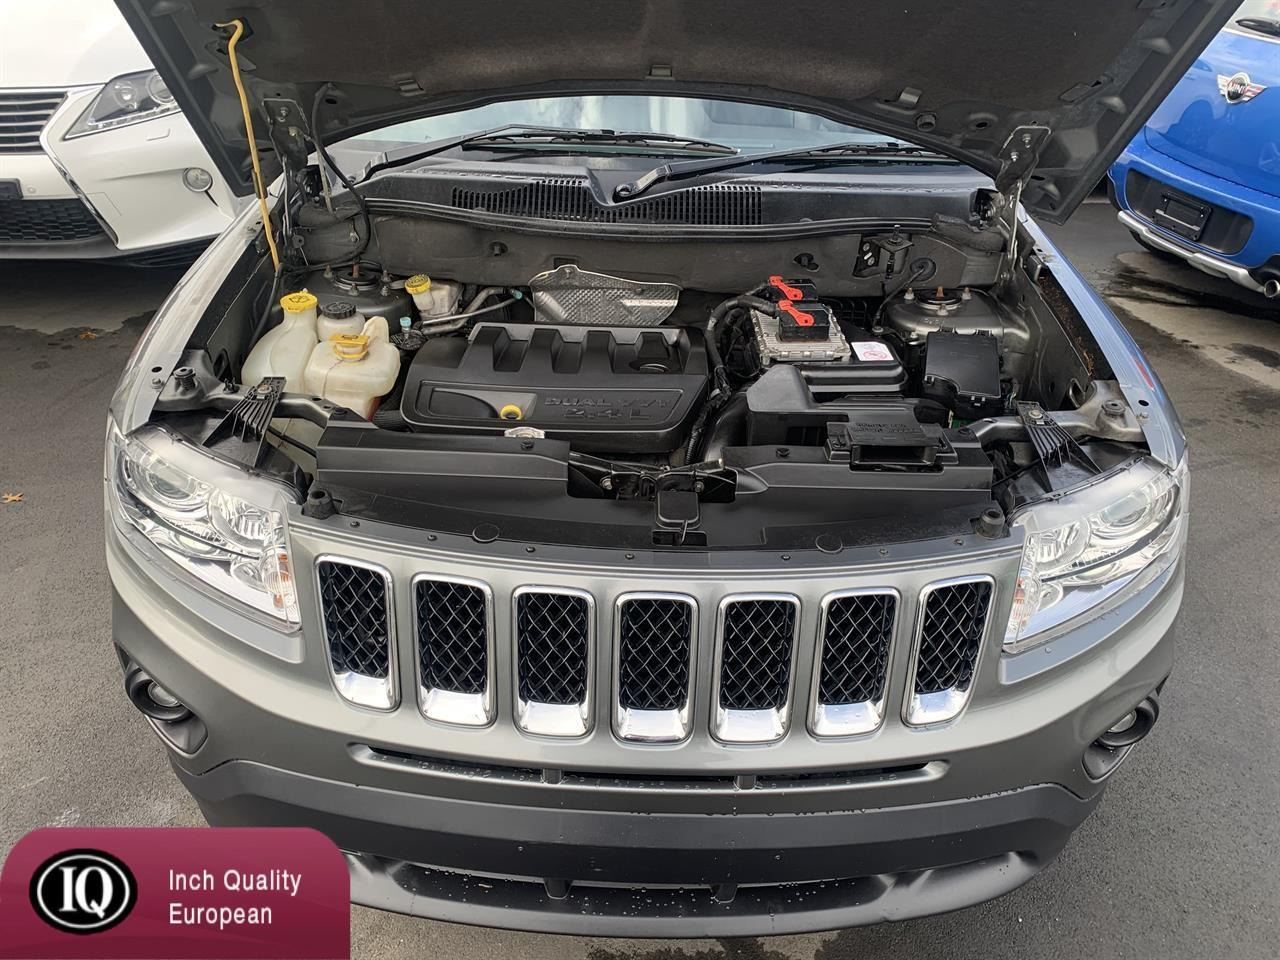 image-13, 2013 Jeep Compass 2.4 NZ NEW 4WD at Christchurch